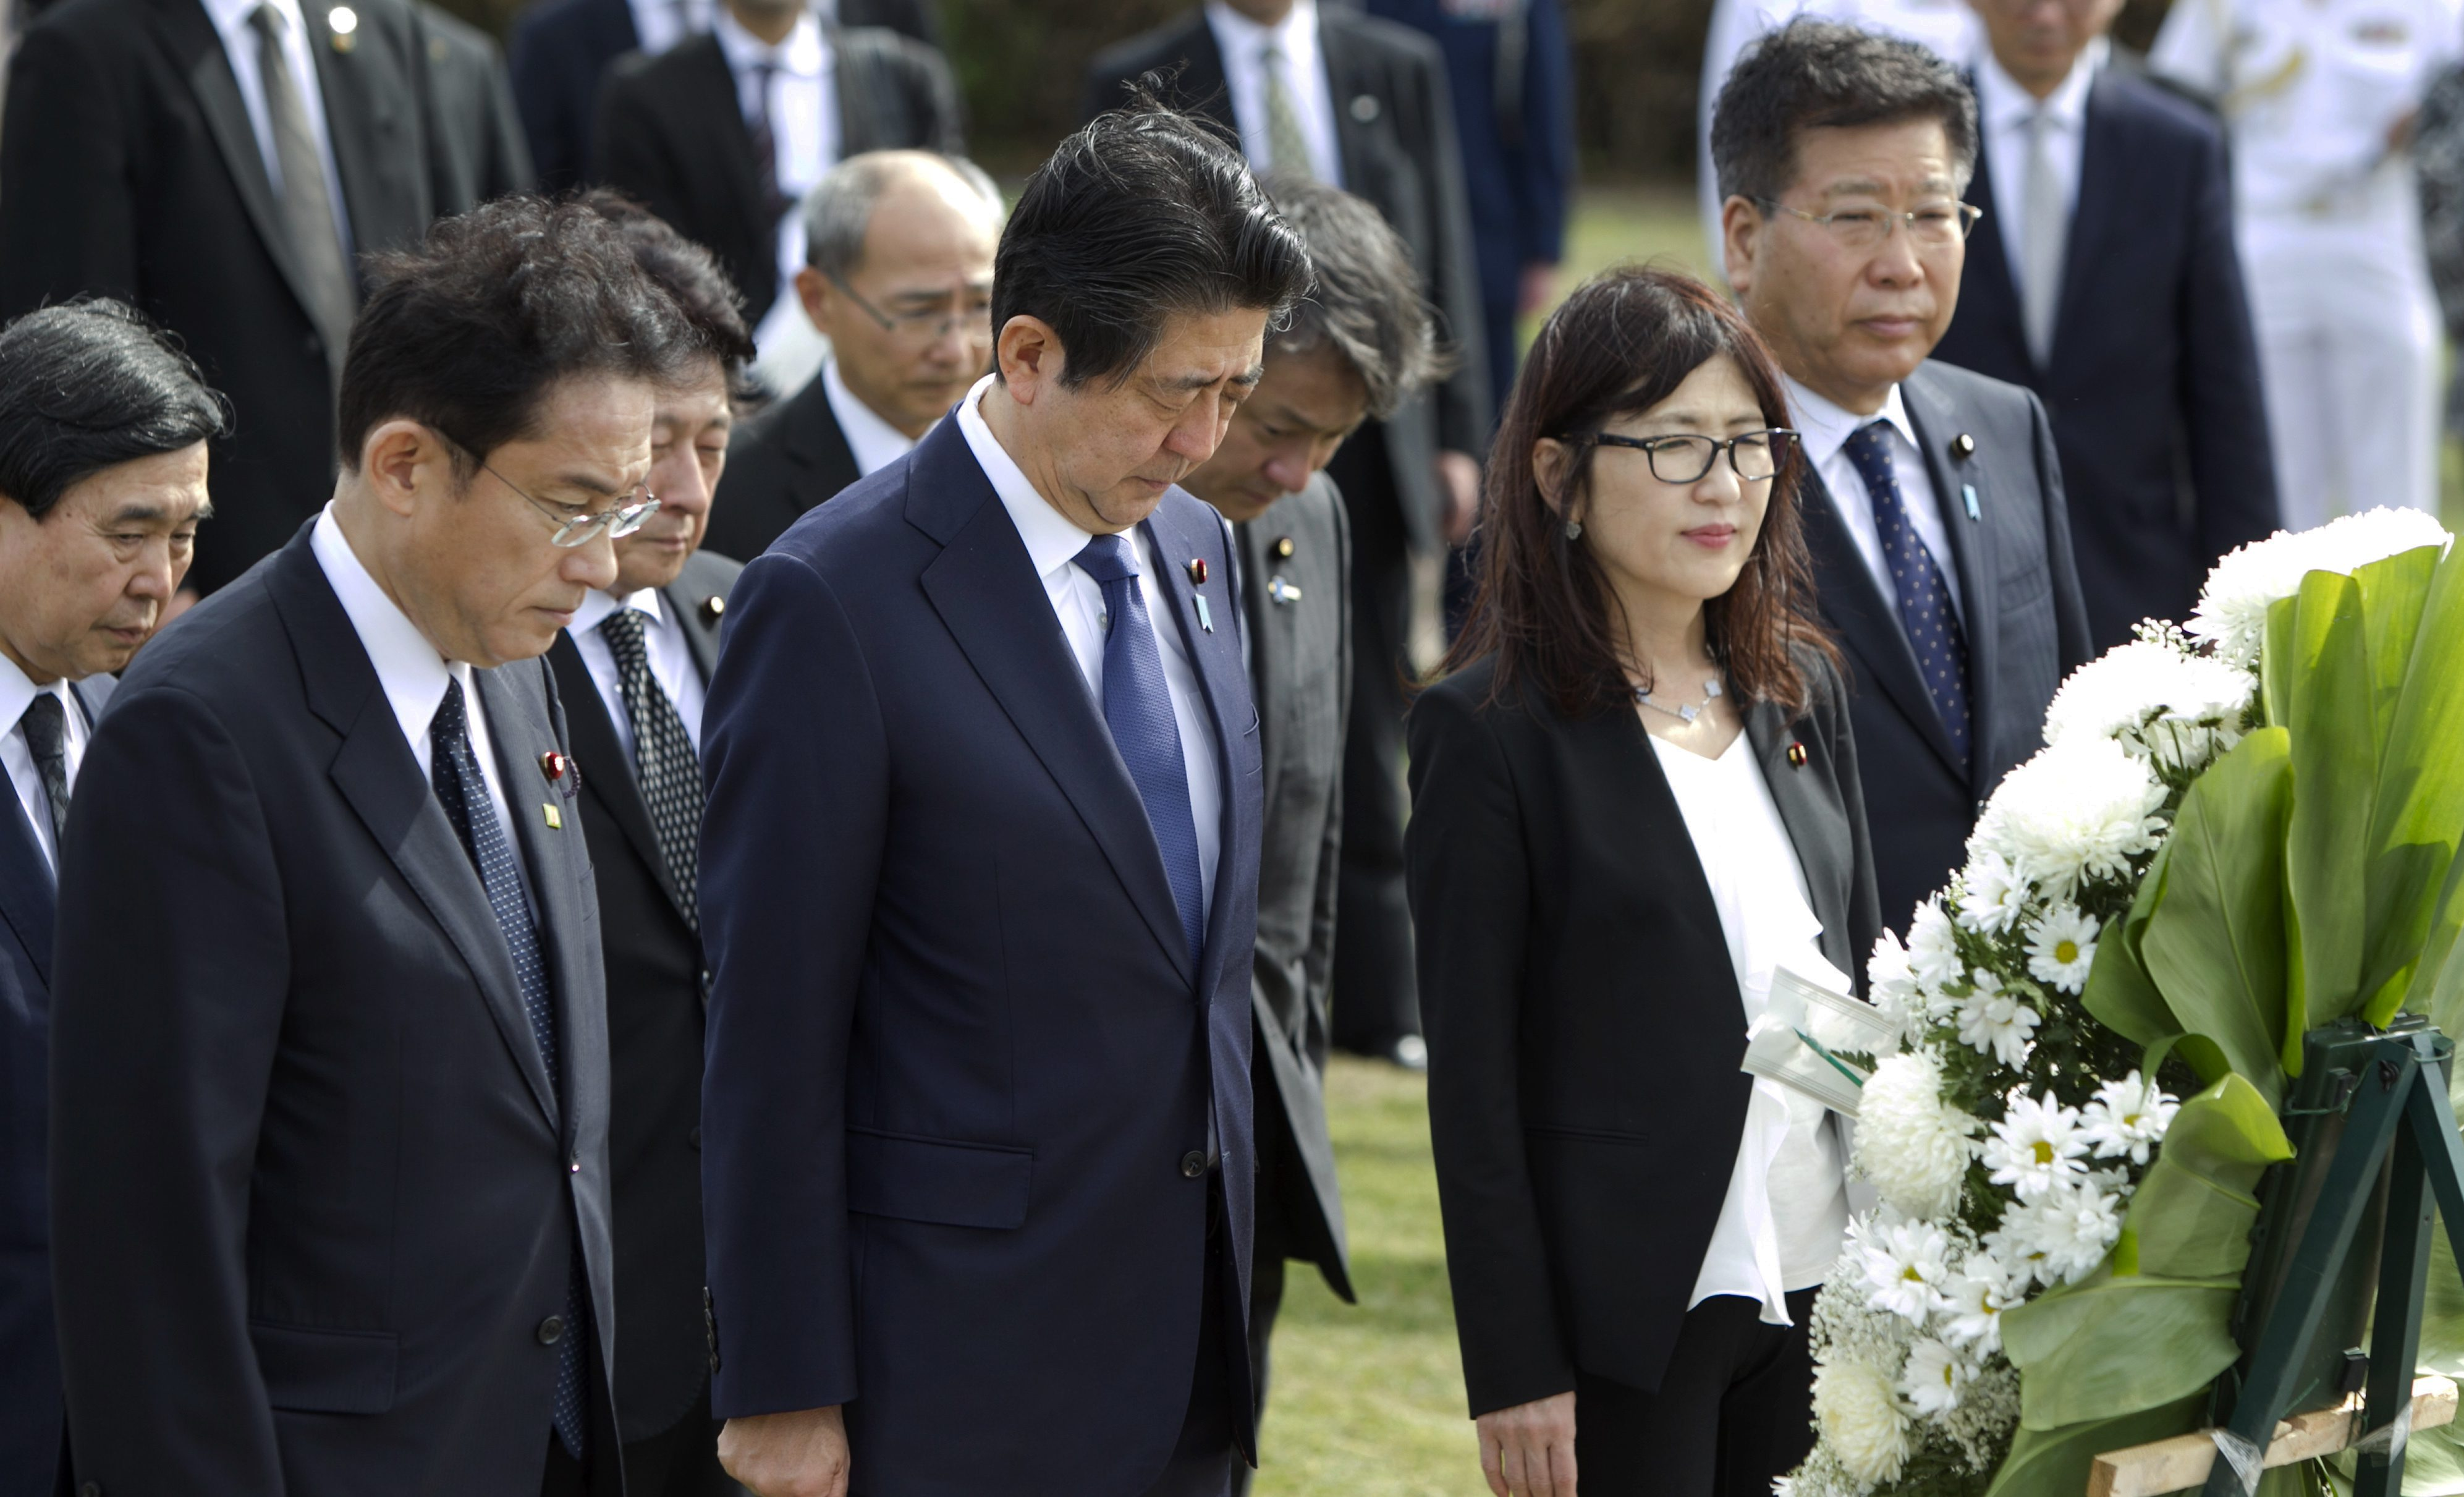 From left, Sal Miwa, of the Japan-America Society of Hawaii, Japanese Prime Minister Shinzo Abe, Japanese Defense Minister Tomomi Inada, and Japan's Deputy Chief Cabinet Secretary Koichi Hagiuda bow at the Ehime Maru Memorial at Kakaako Waterfront Park, Monday, Dec. 26, 2016, in Honolulu. The memorial is dedicated to the victims of a 2001 deadly collision off the coast of Hawaii between the Ehime Maru, a fisheries training vessel, and a U.S. naval submarine. Abe plans to visit Pearl Harbor with U.S. President Barack Obama Tuesday.